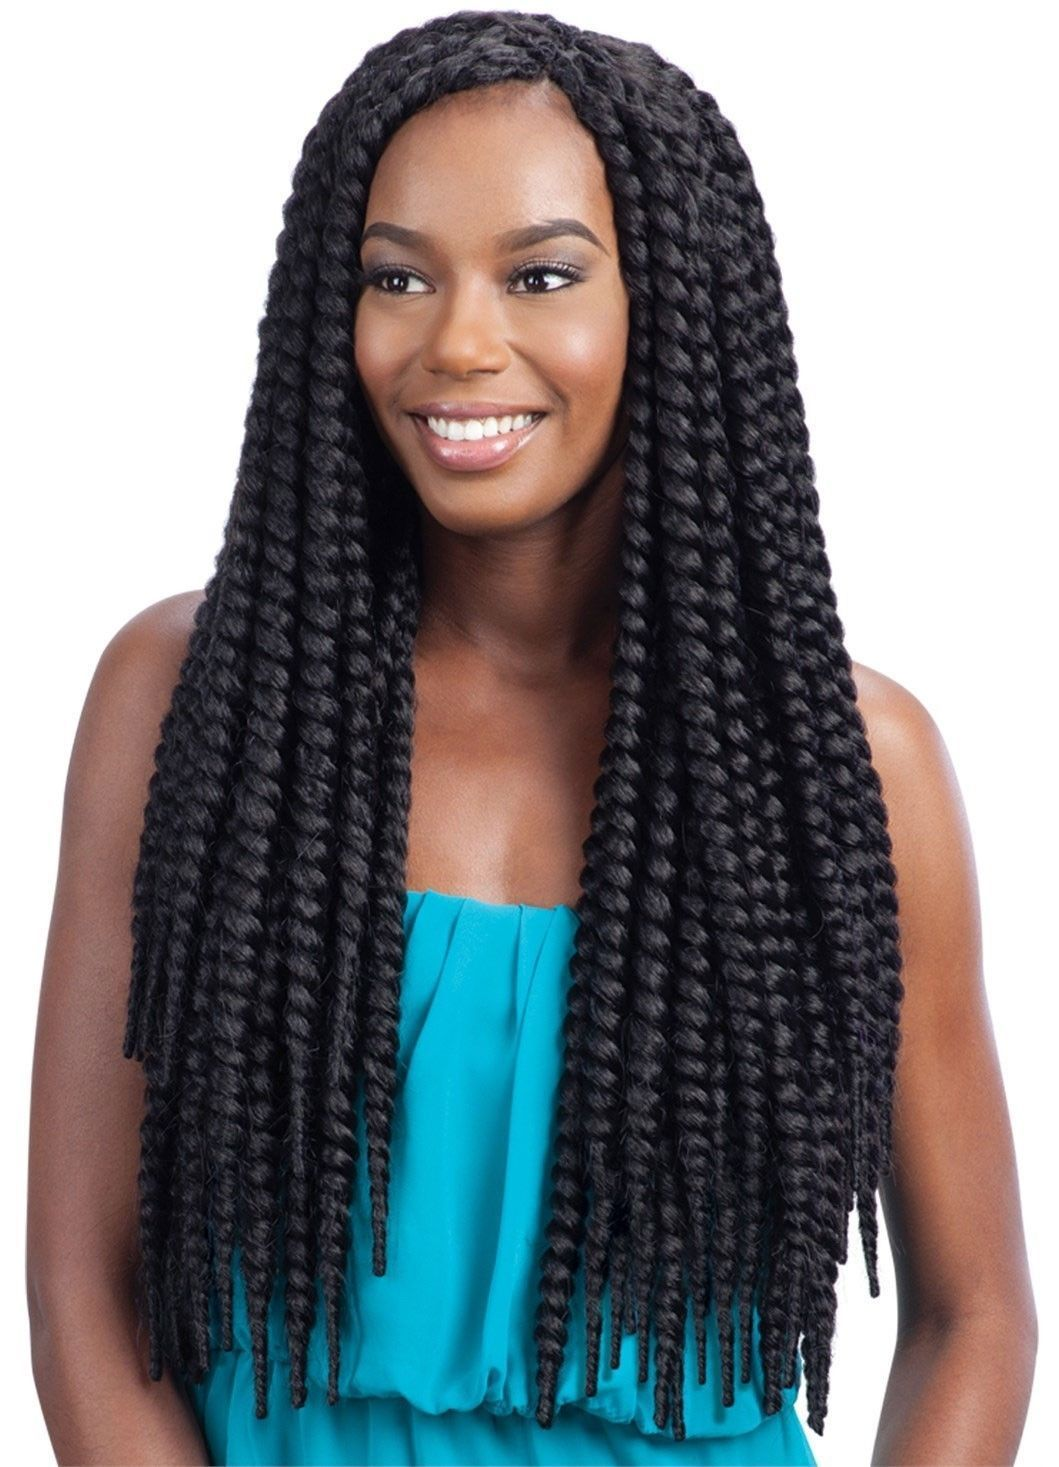 Details about Model Model 2X Natural Jumbo Twist Braid